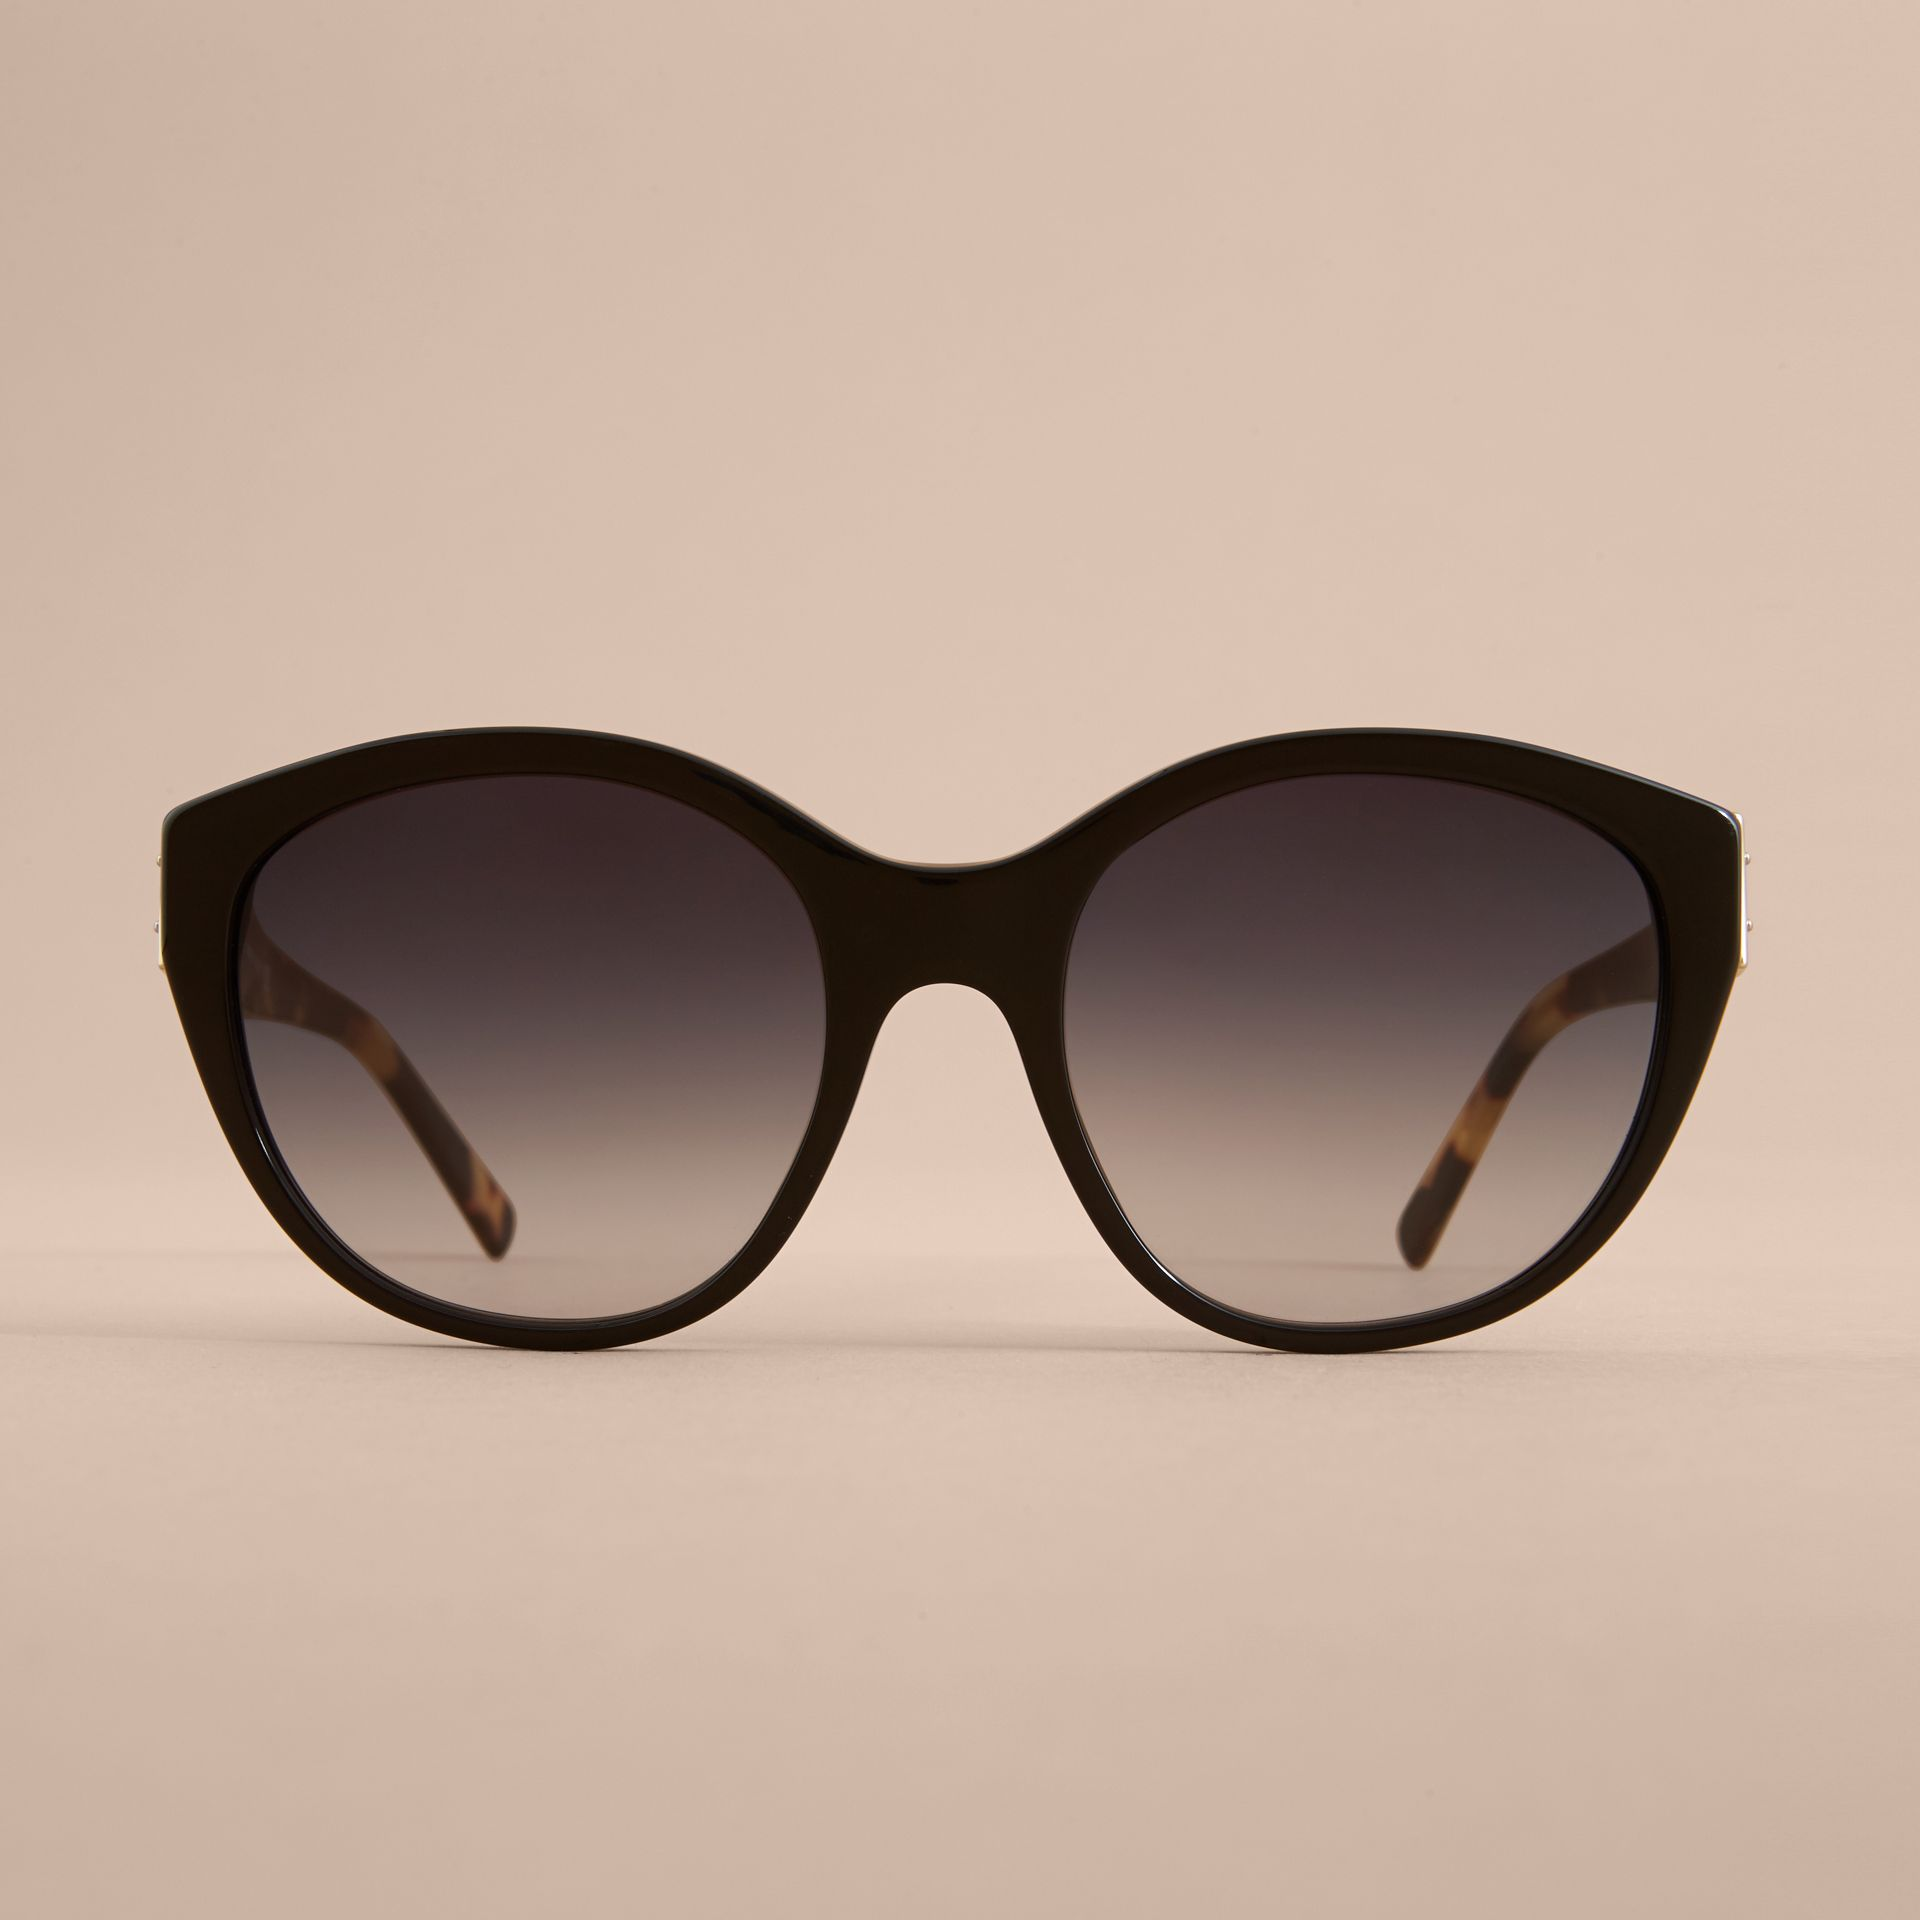 Buckle Detail Round Frame Sunglasses in Black - Women | Burberry Australia - gallery image 3